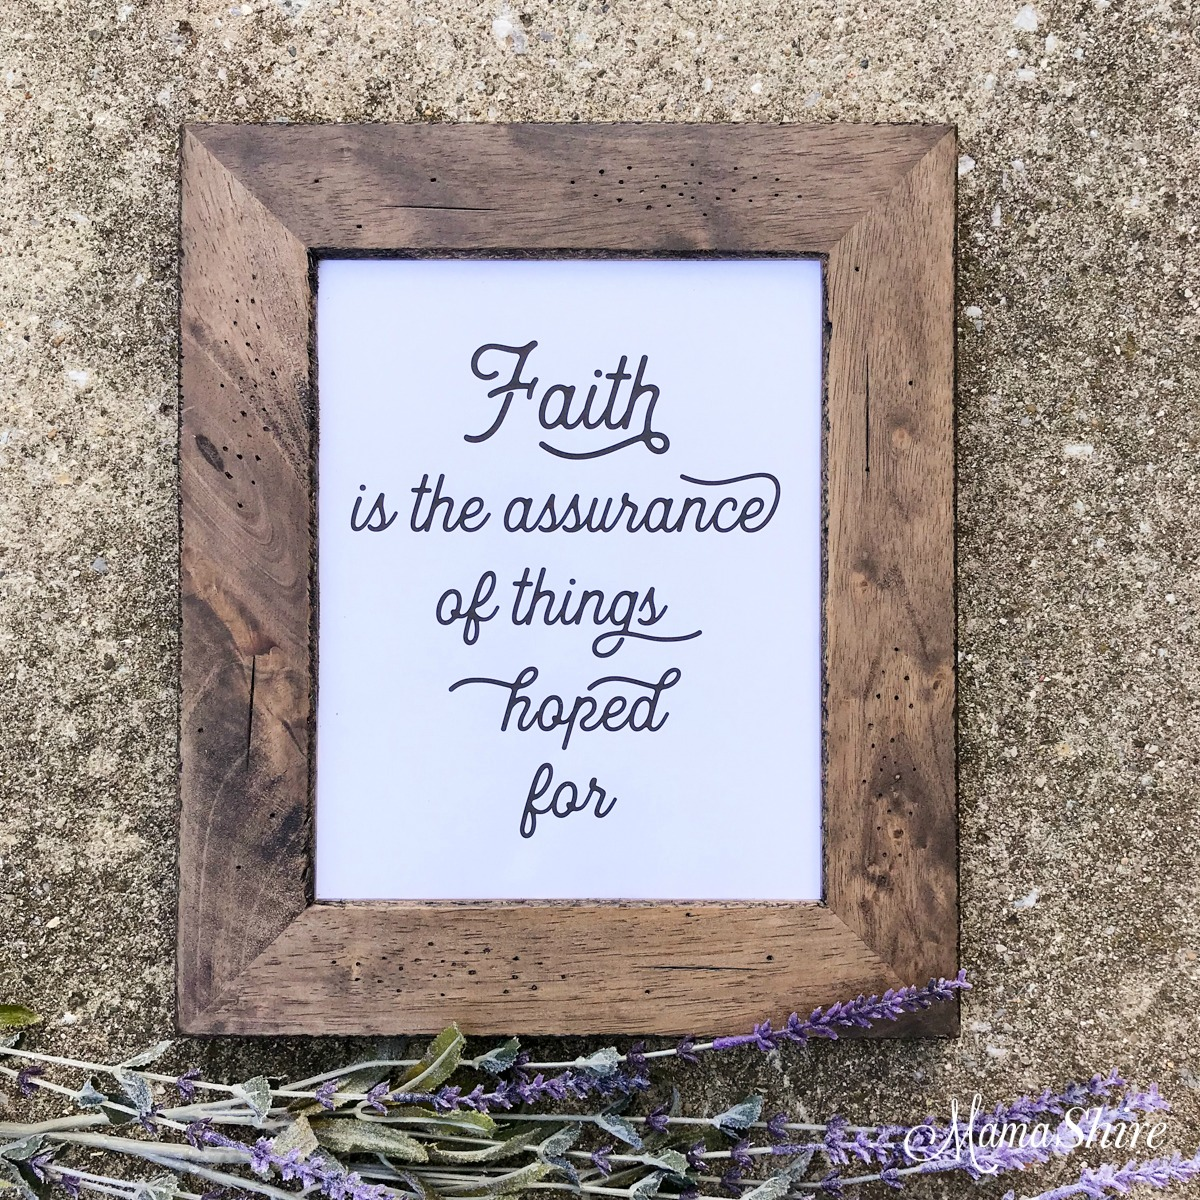 Printable PDF of Faith is the assurance of things hoped for.